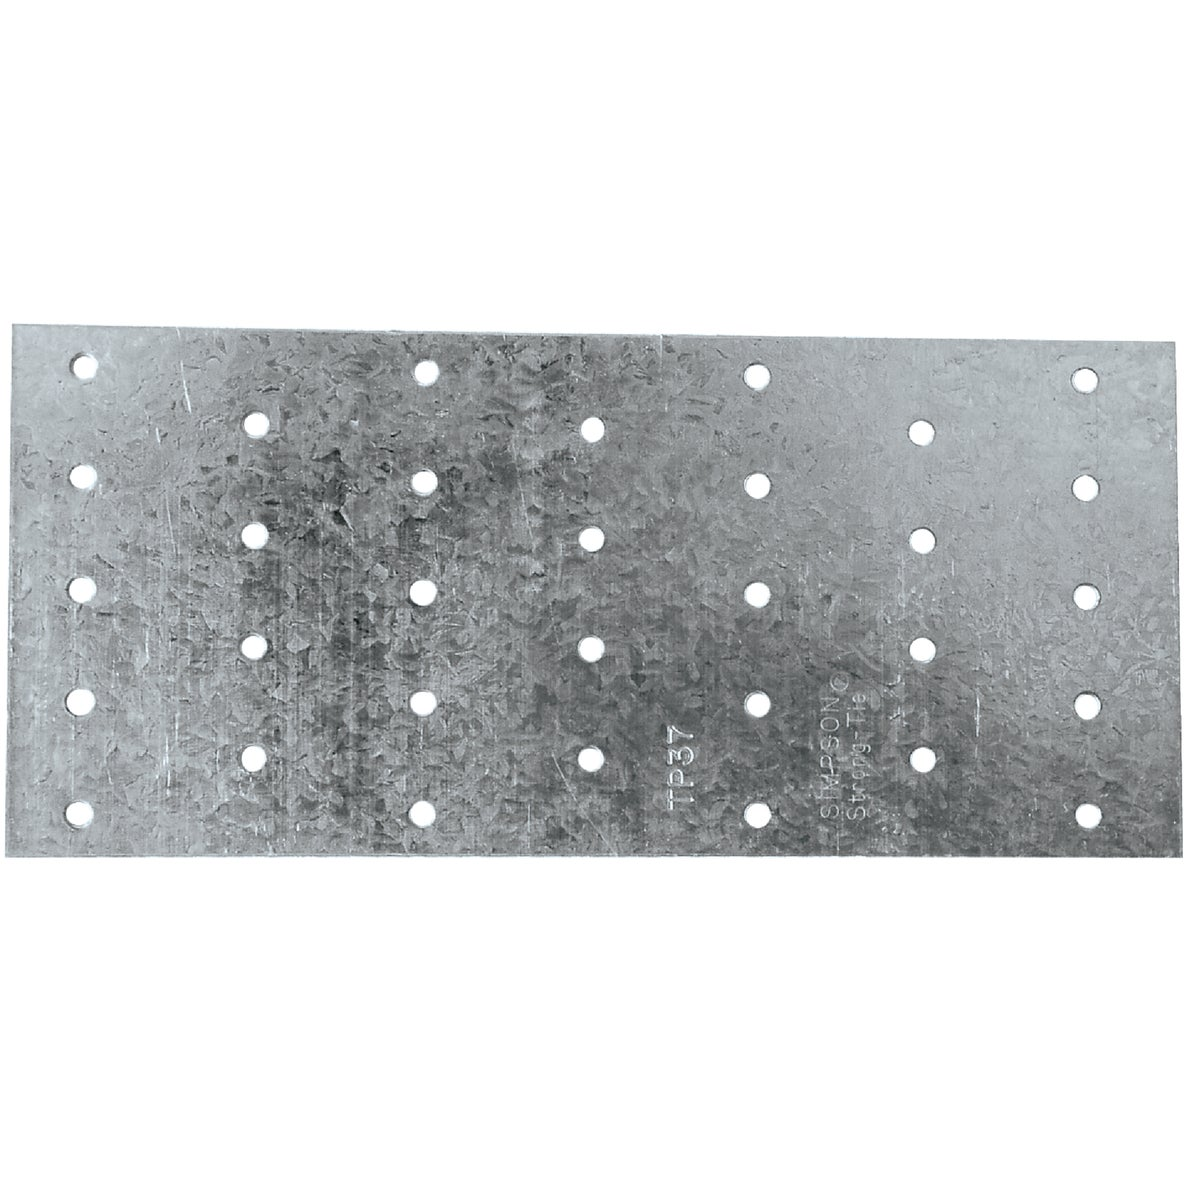 3-1/8X7 TIE PLATE